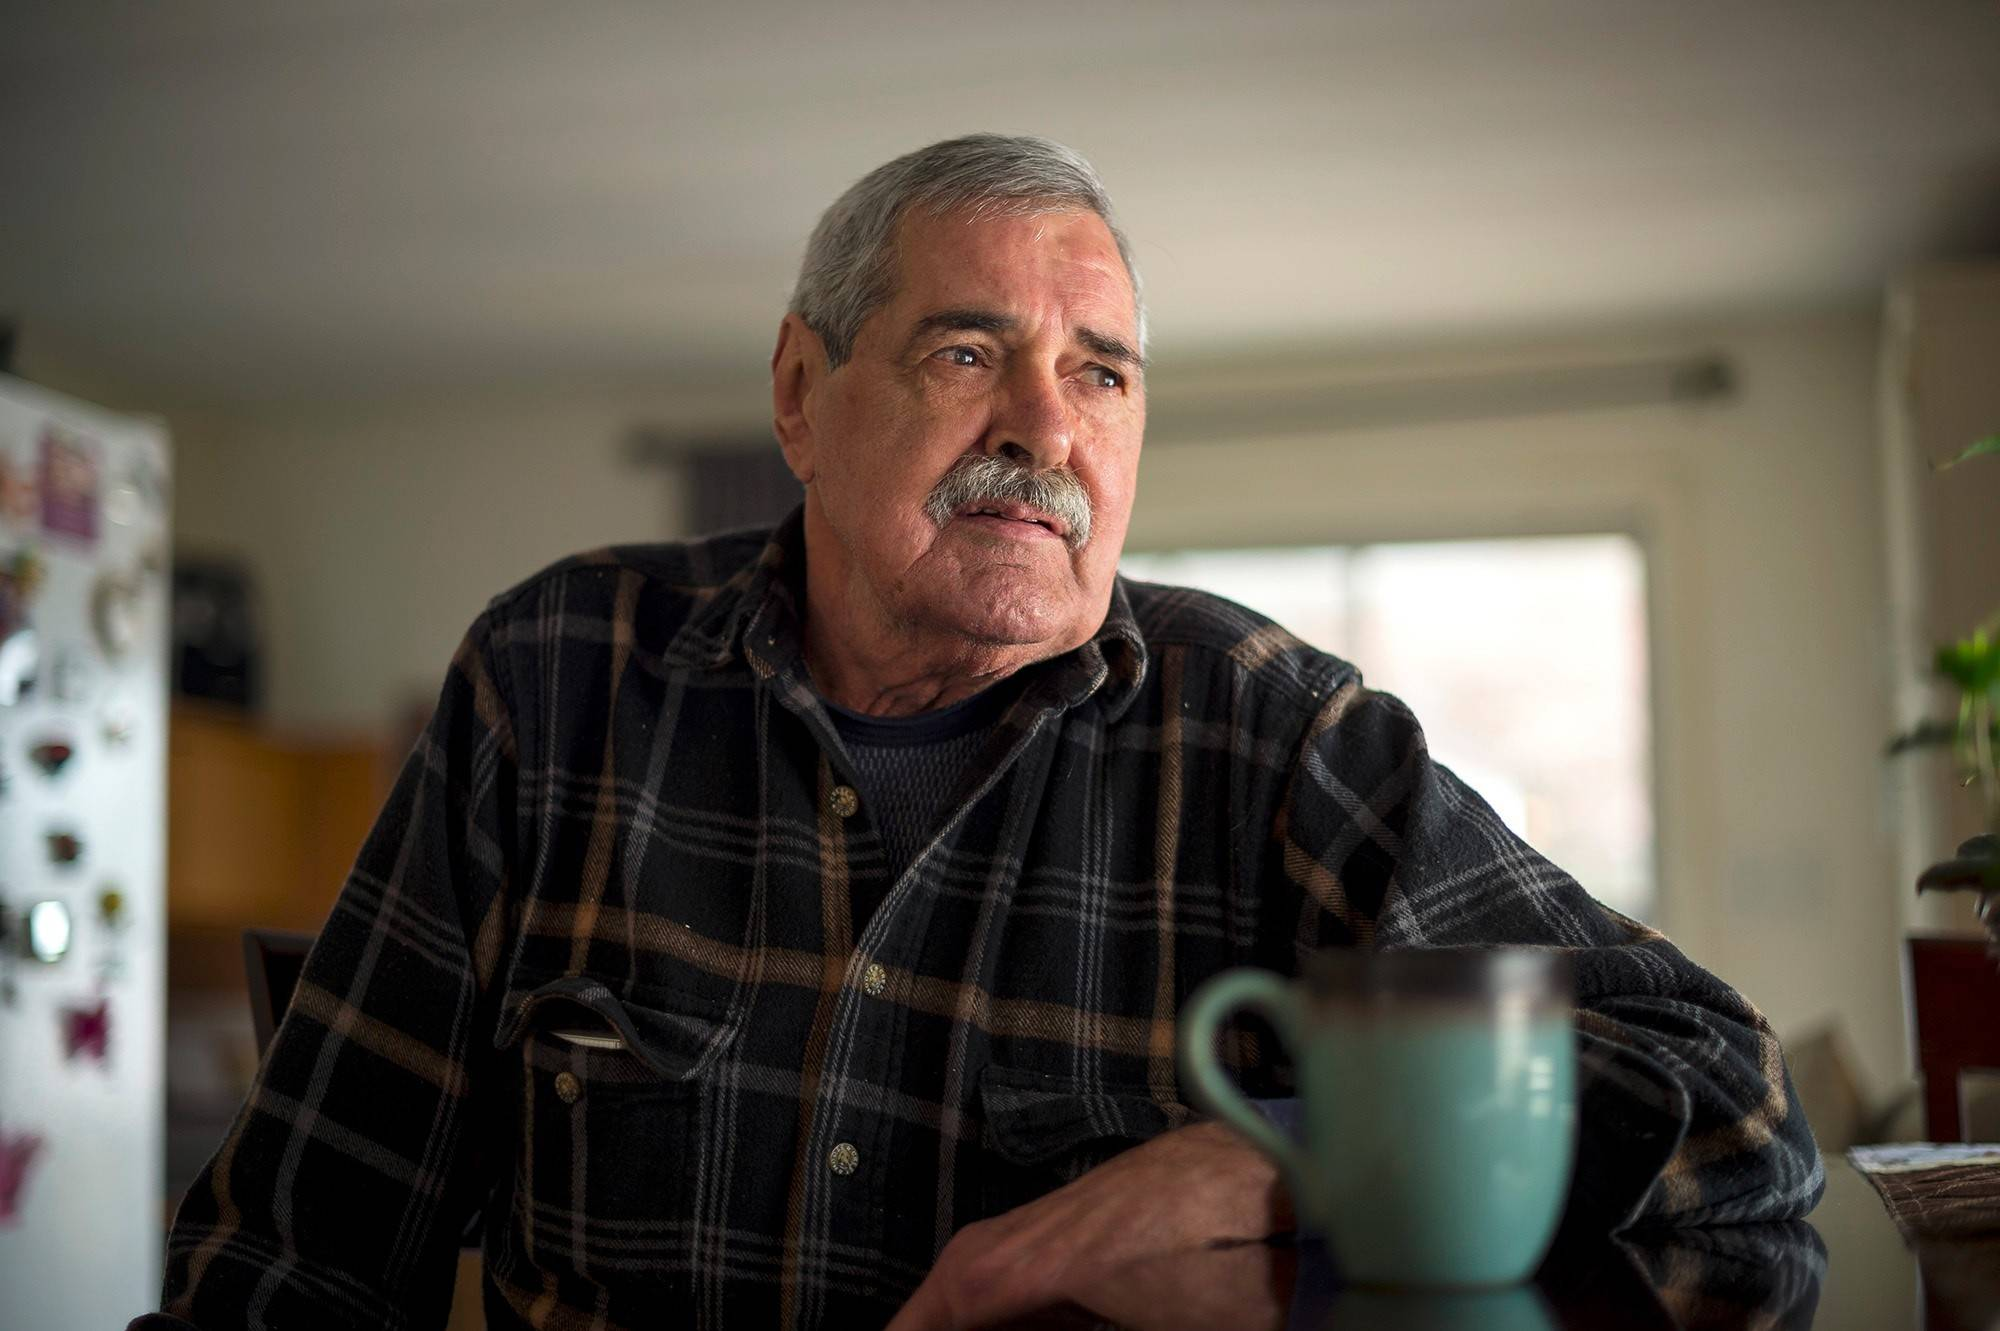 After watching a video describing end-of-life medical treatments, Ted Goff, who suffers from advanced emphysema, realized that he didn't want any artificial measures used to keep him alive.